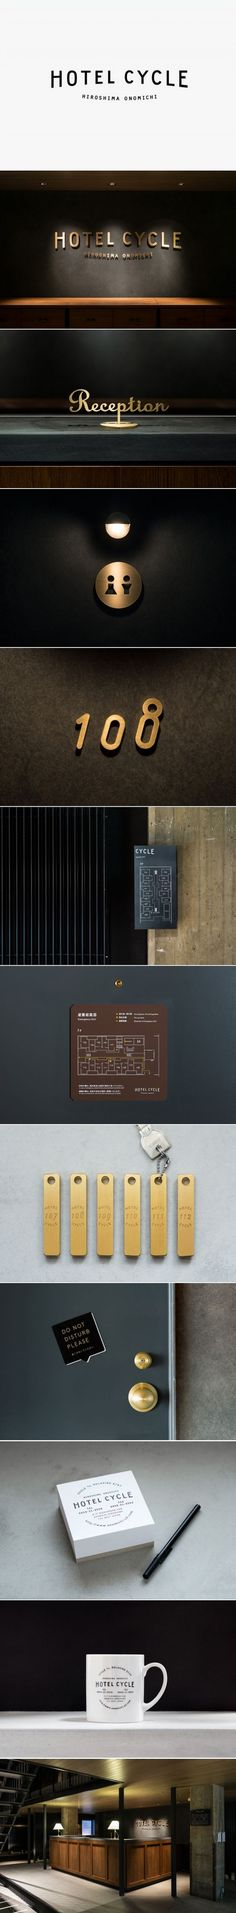 Logotype and interior signage designed by UMA for U2's Onomichi based Hotel Cycle: